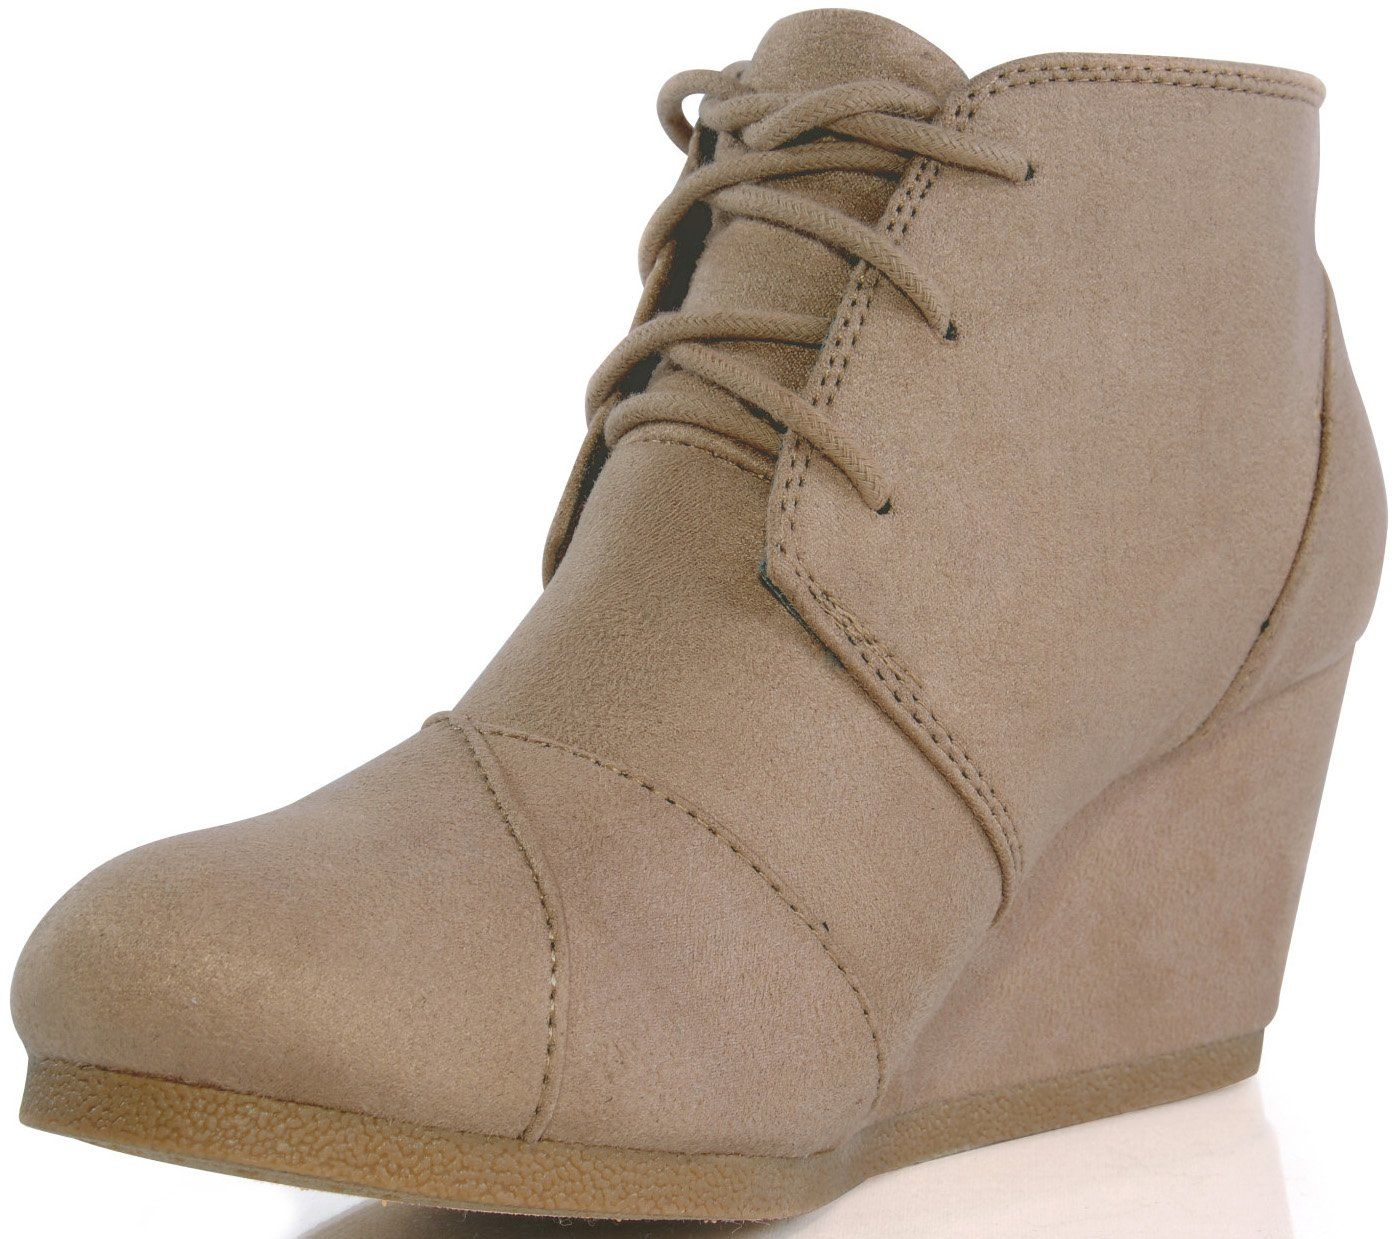 Marco Republic Galaxy Womens Wedge Boots - (Charcoal) - 5.5